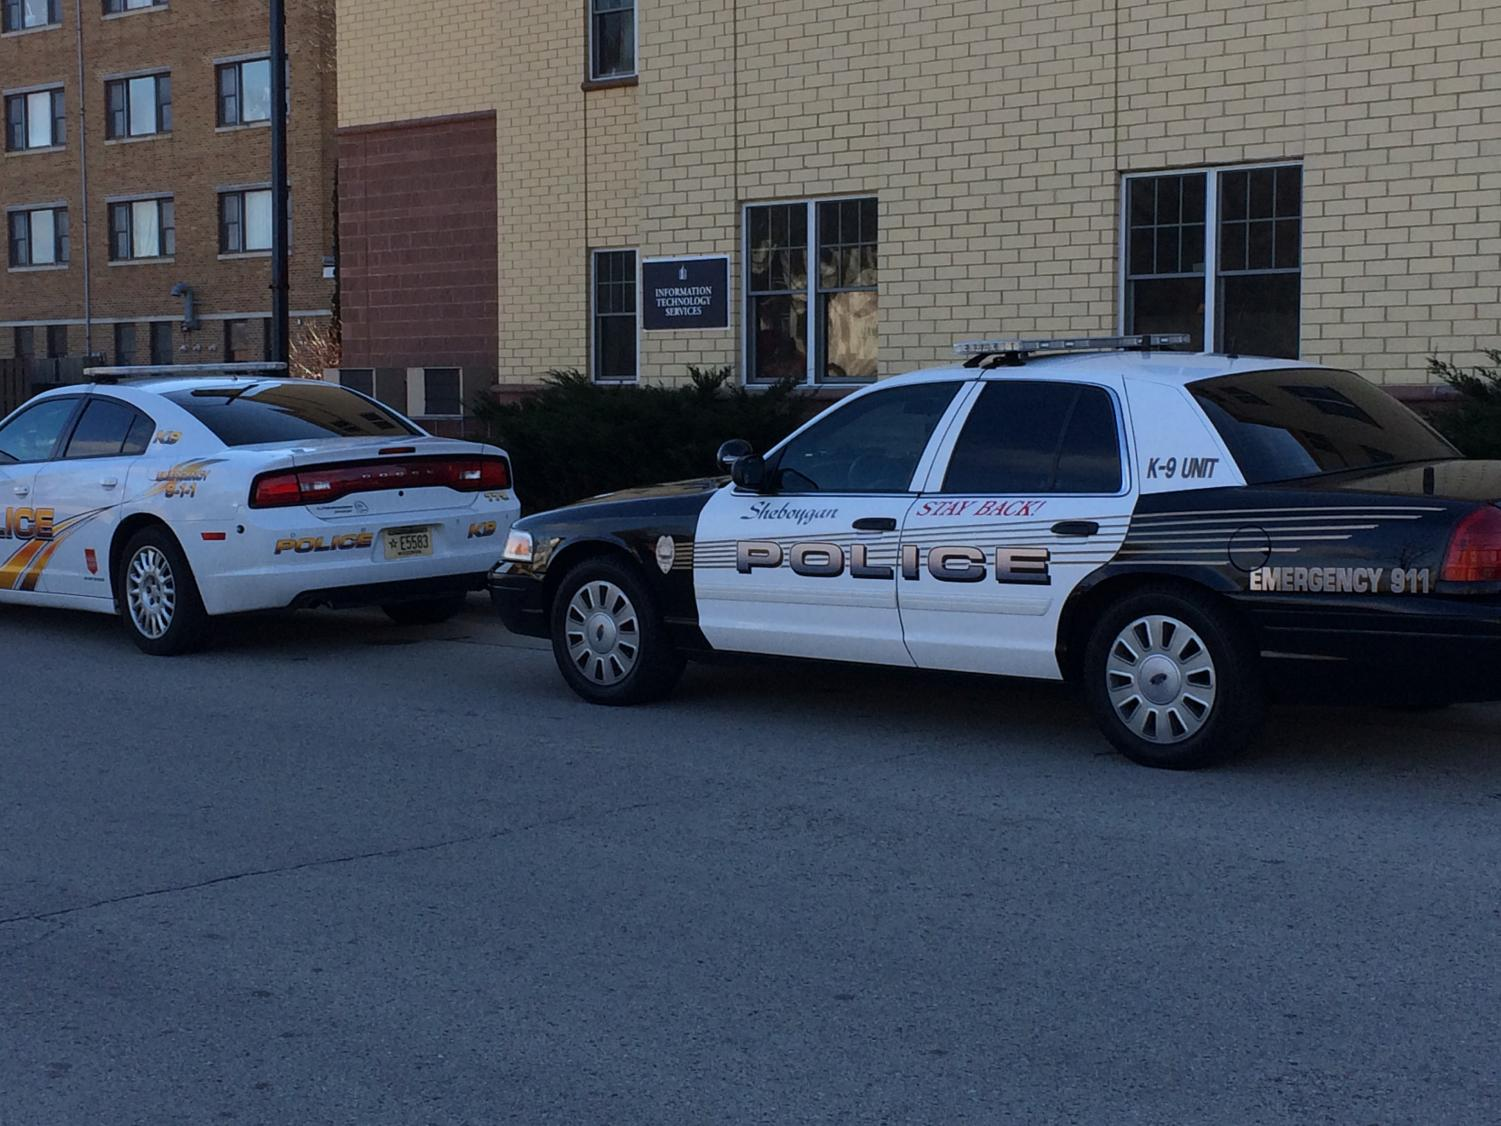 Law enforcement vehicles stationed at Lakeland on the morning of Dec. 6.